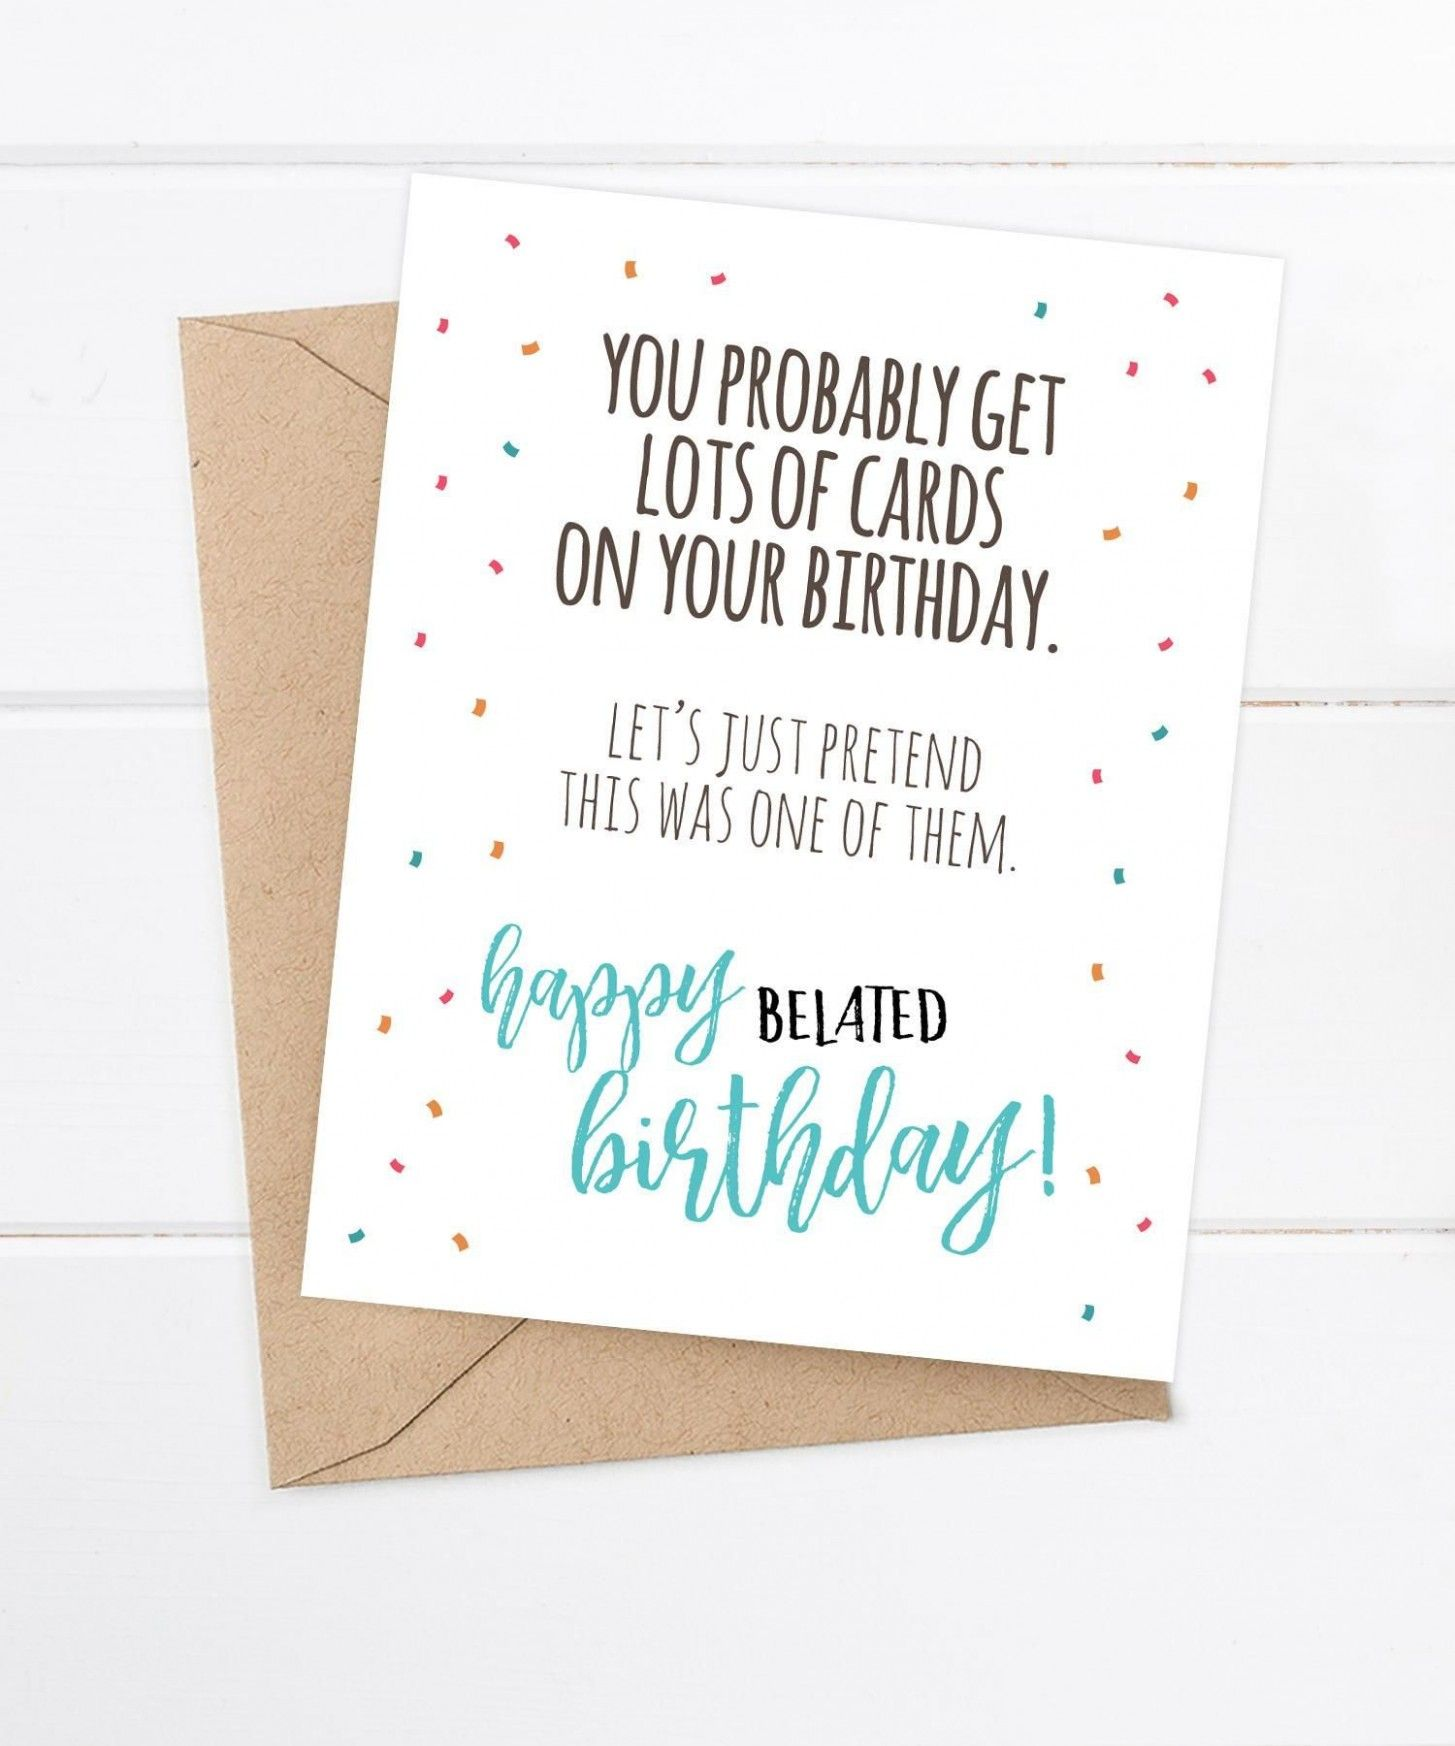 9 Awesome Belated Birthday Card Belated Birthday Card Funny Birthday Cards Belated Birthday